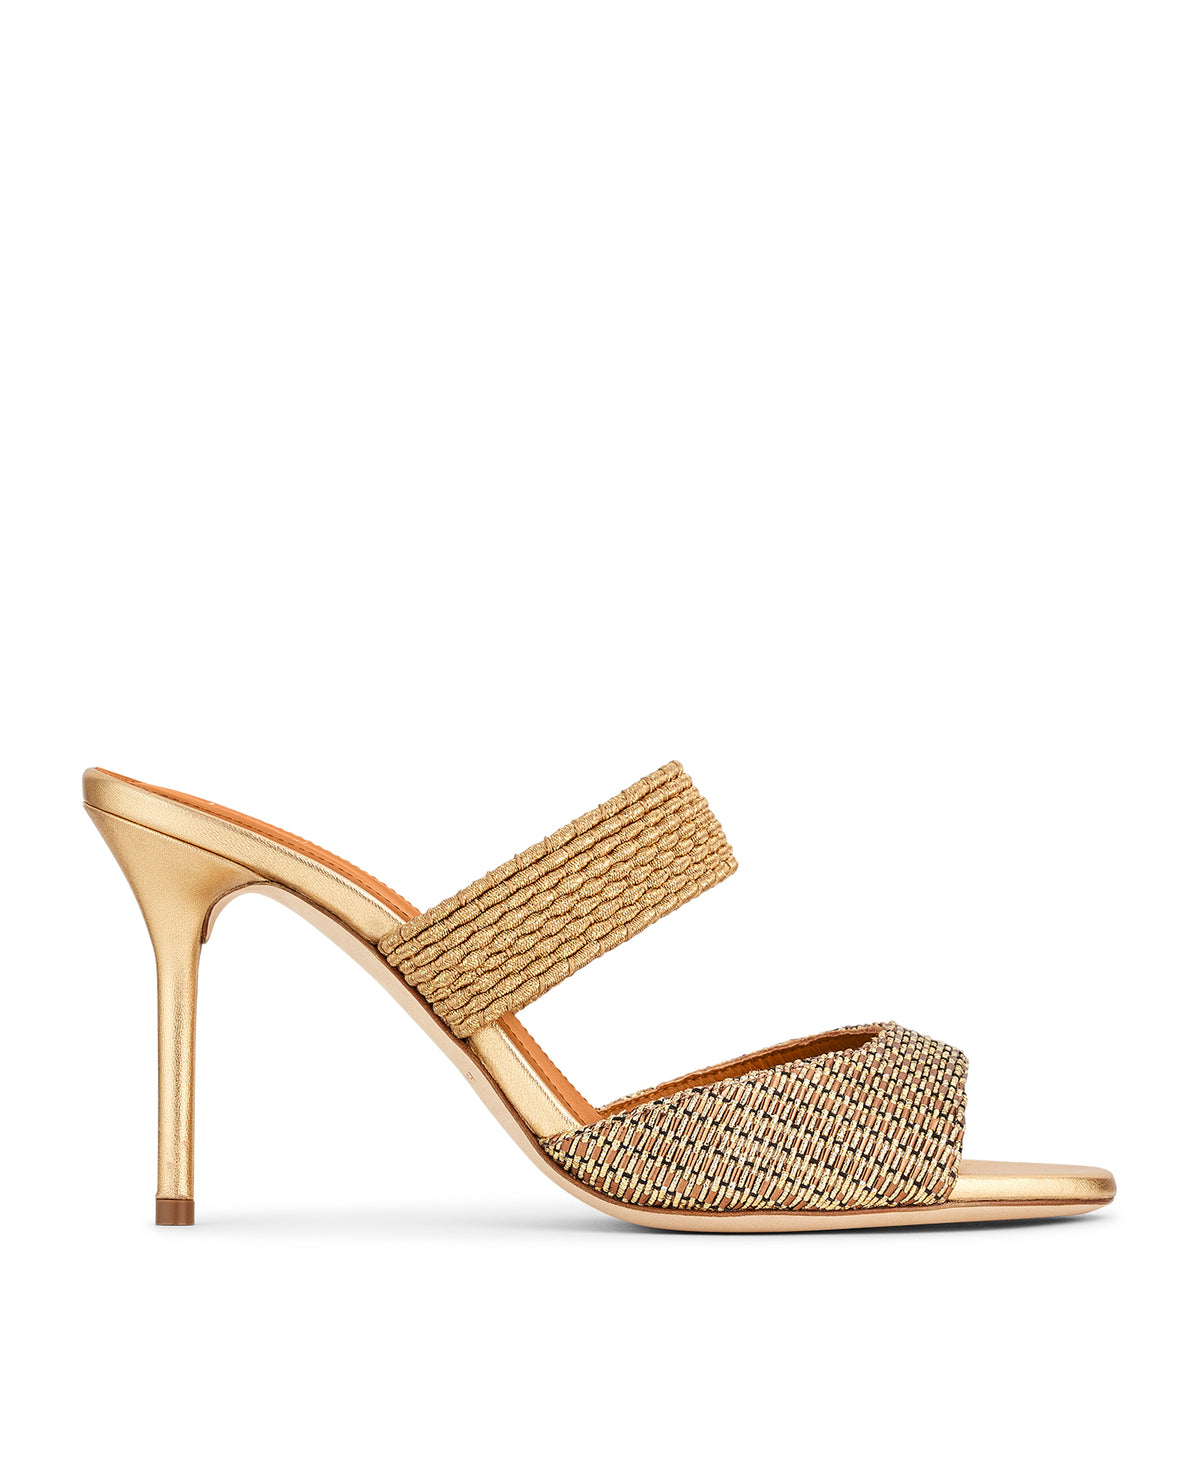 Women's Gold Lurex Open Toe Sandals With Heel Malone Souliers